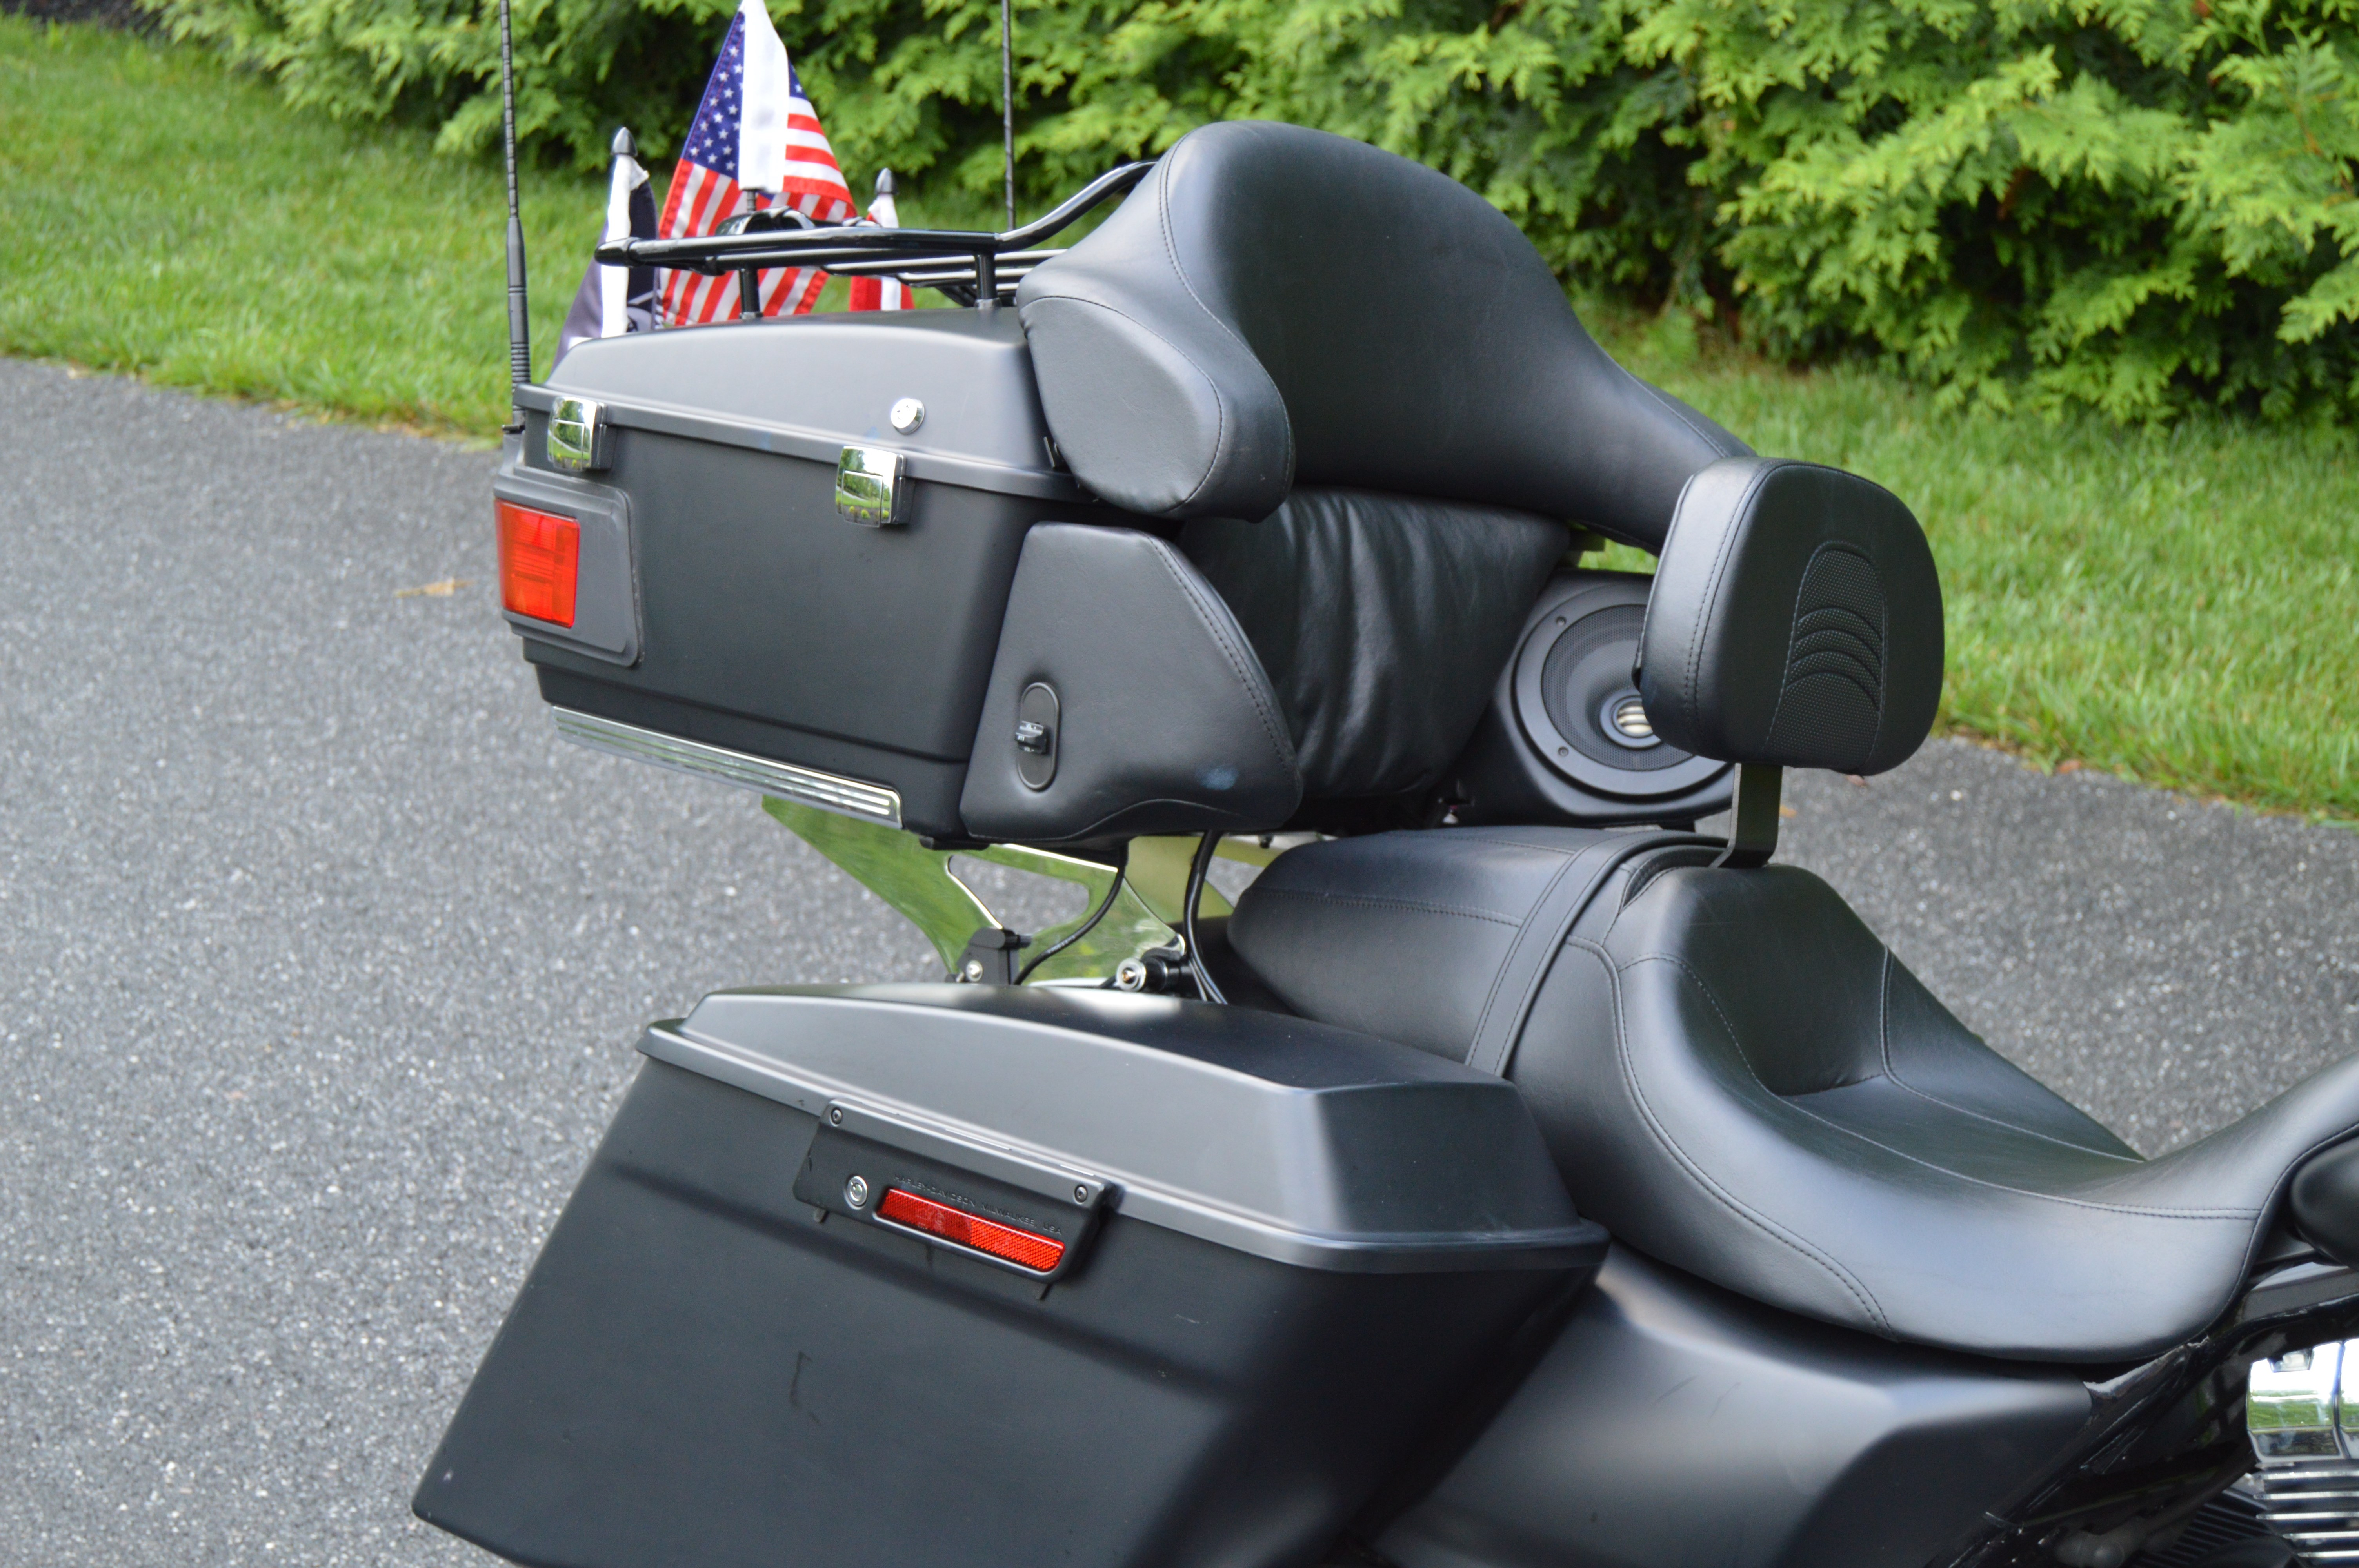 Harley Davidson Street Glide Windshield Upgrade